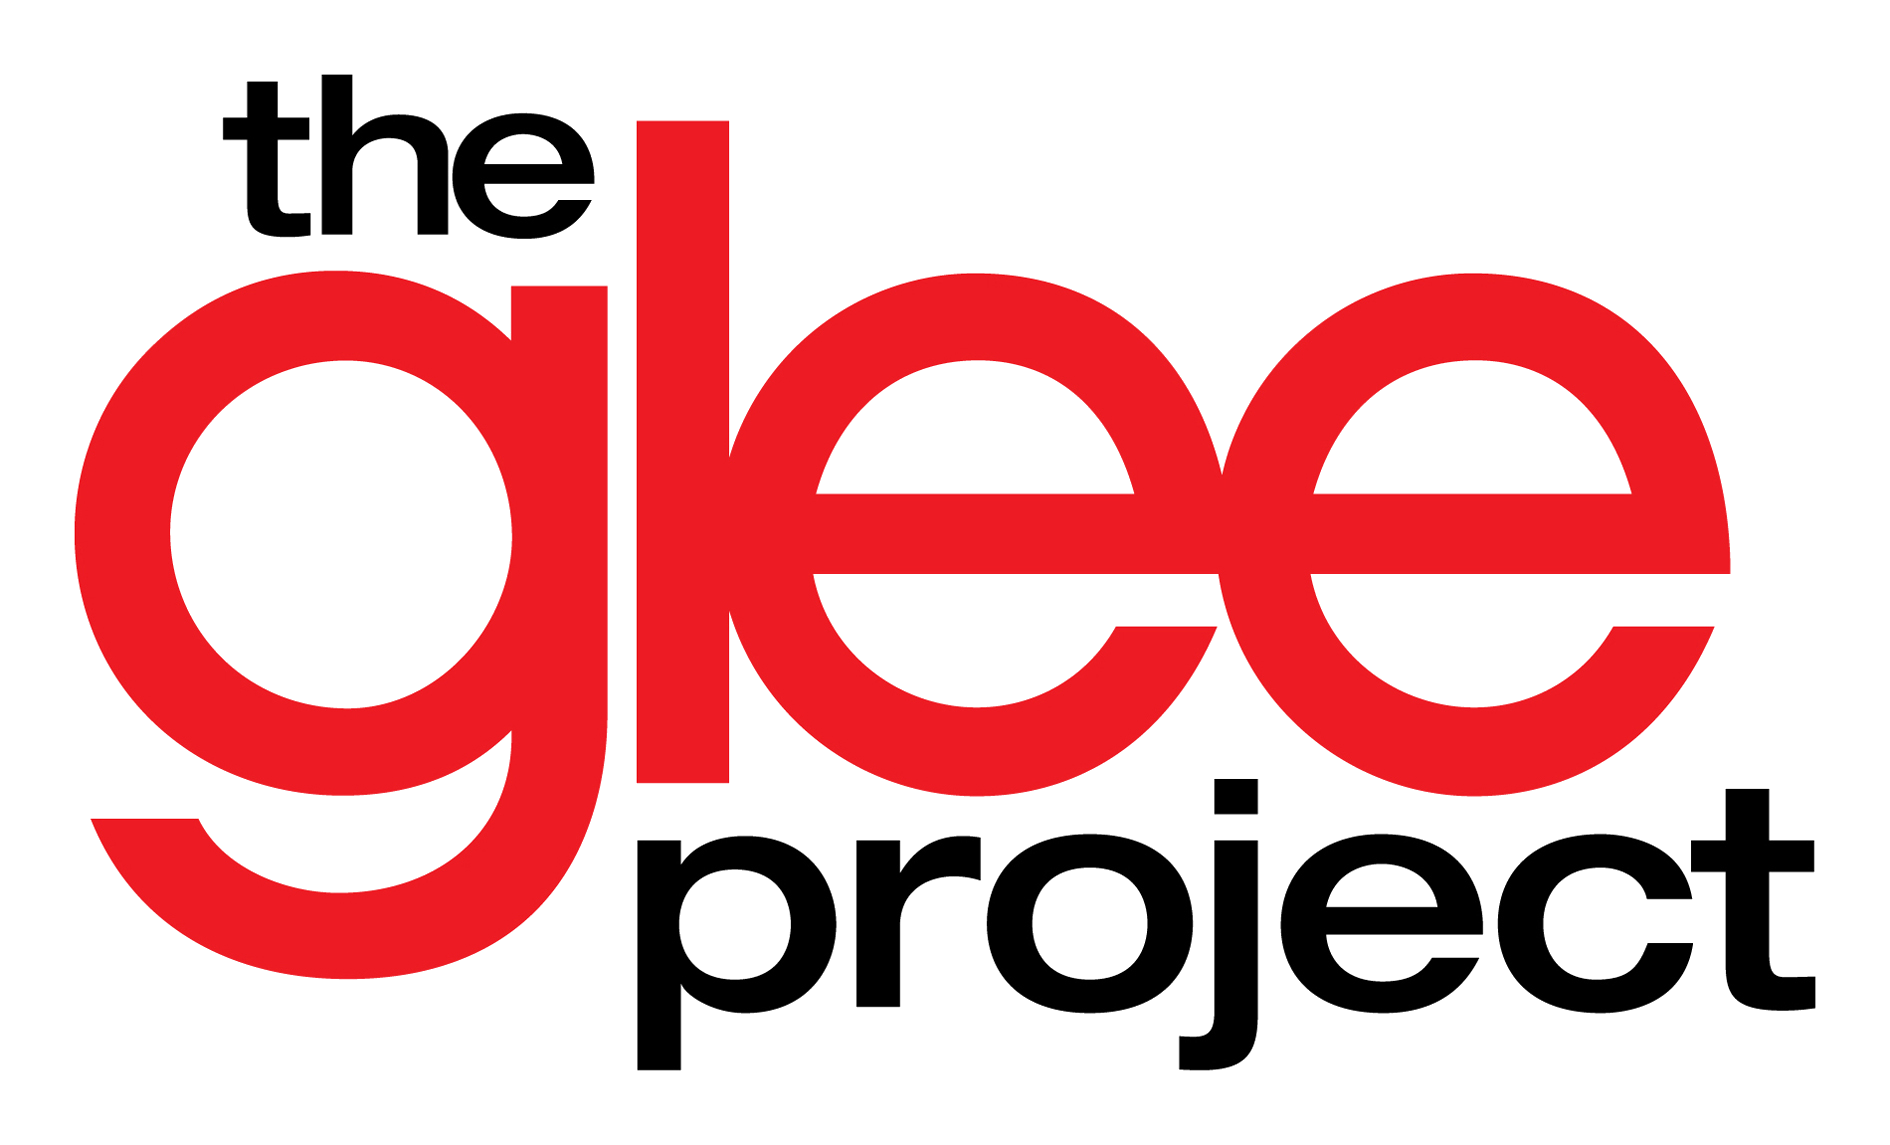 Glee drawing logo. The project journey continues jpg black and white download